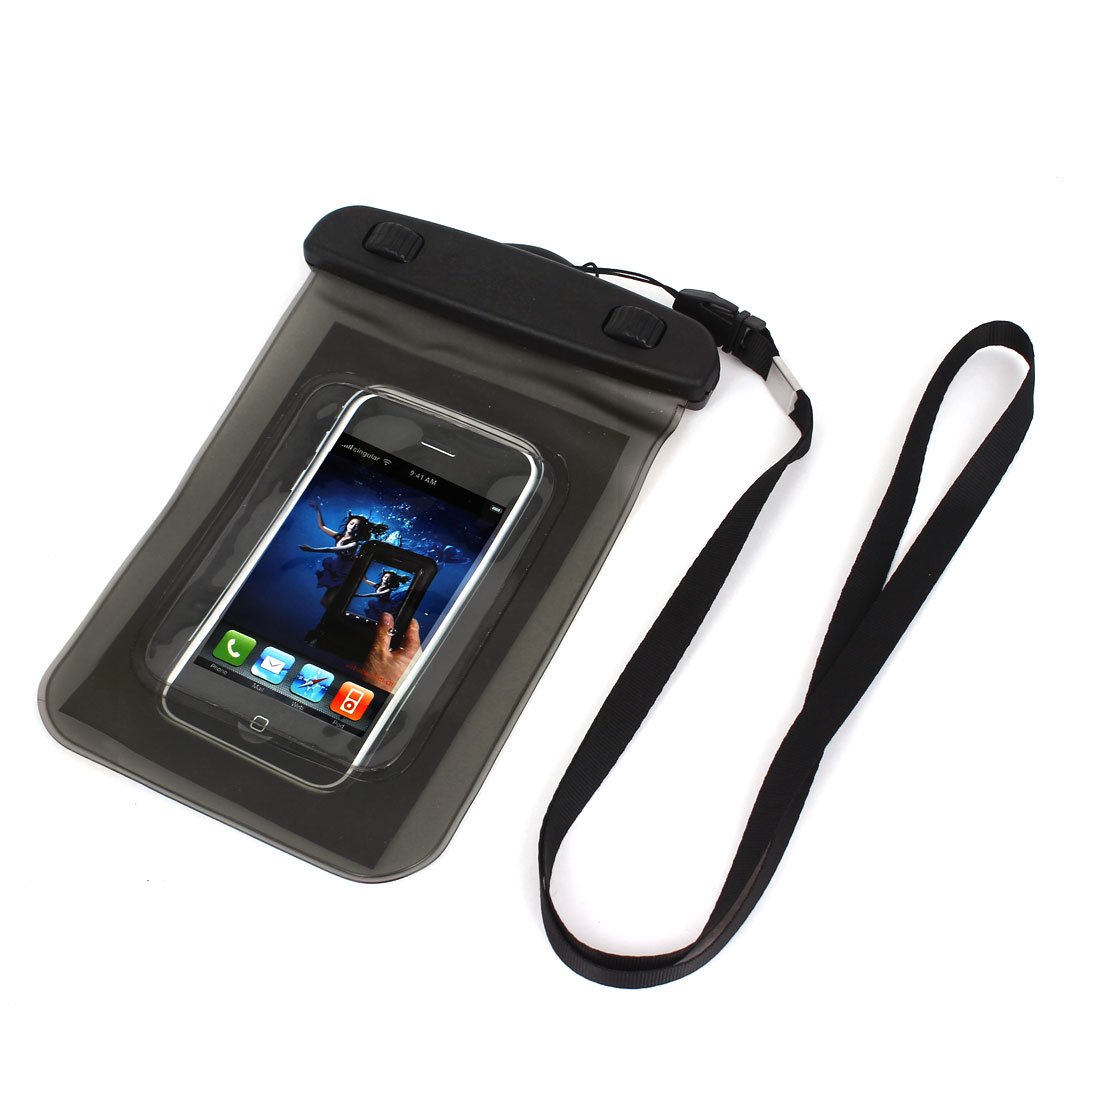 "Waterproof Case Dry Bag Protector Pouch Gray + Strap for 4"" Mobile Phone"